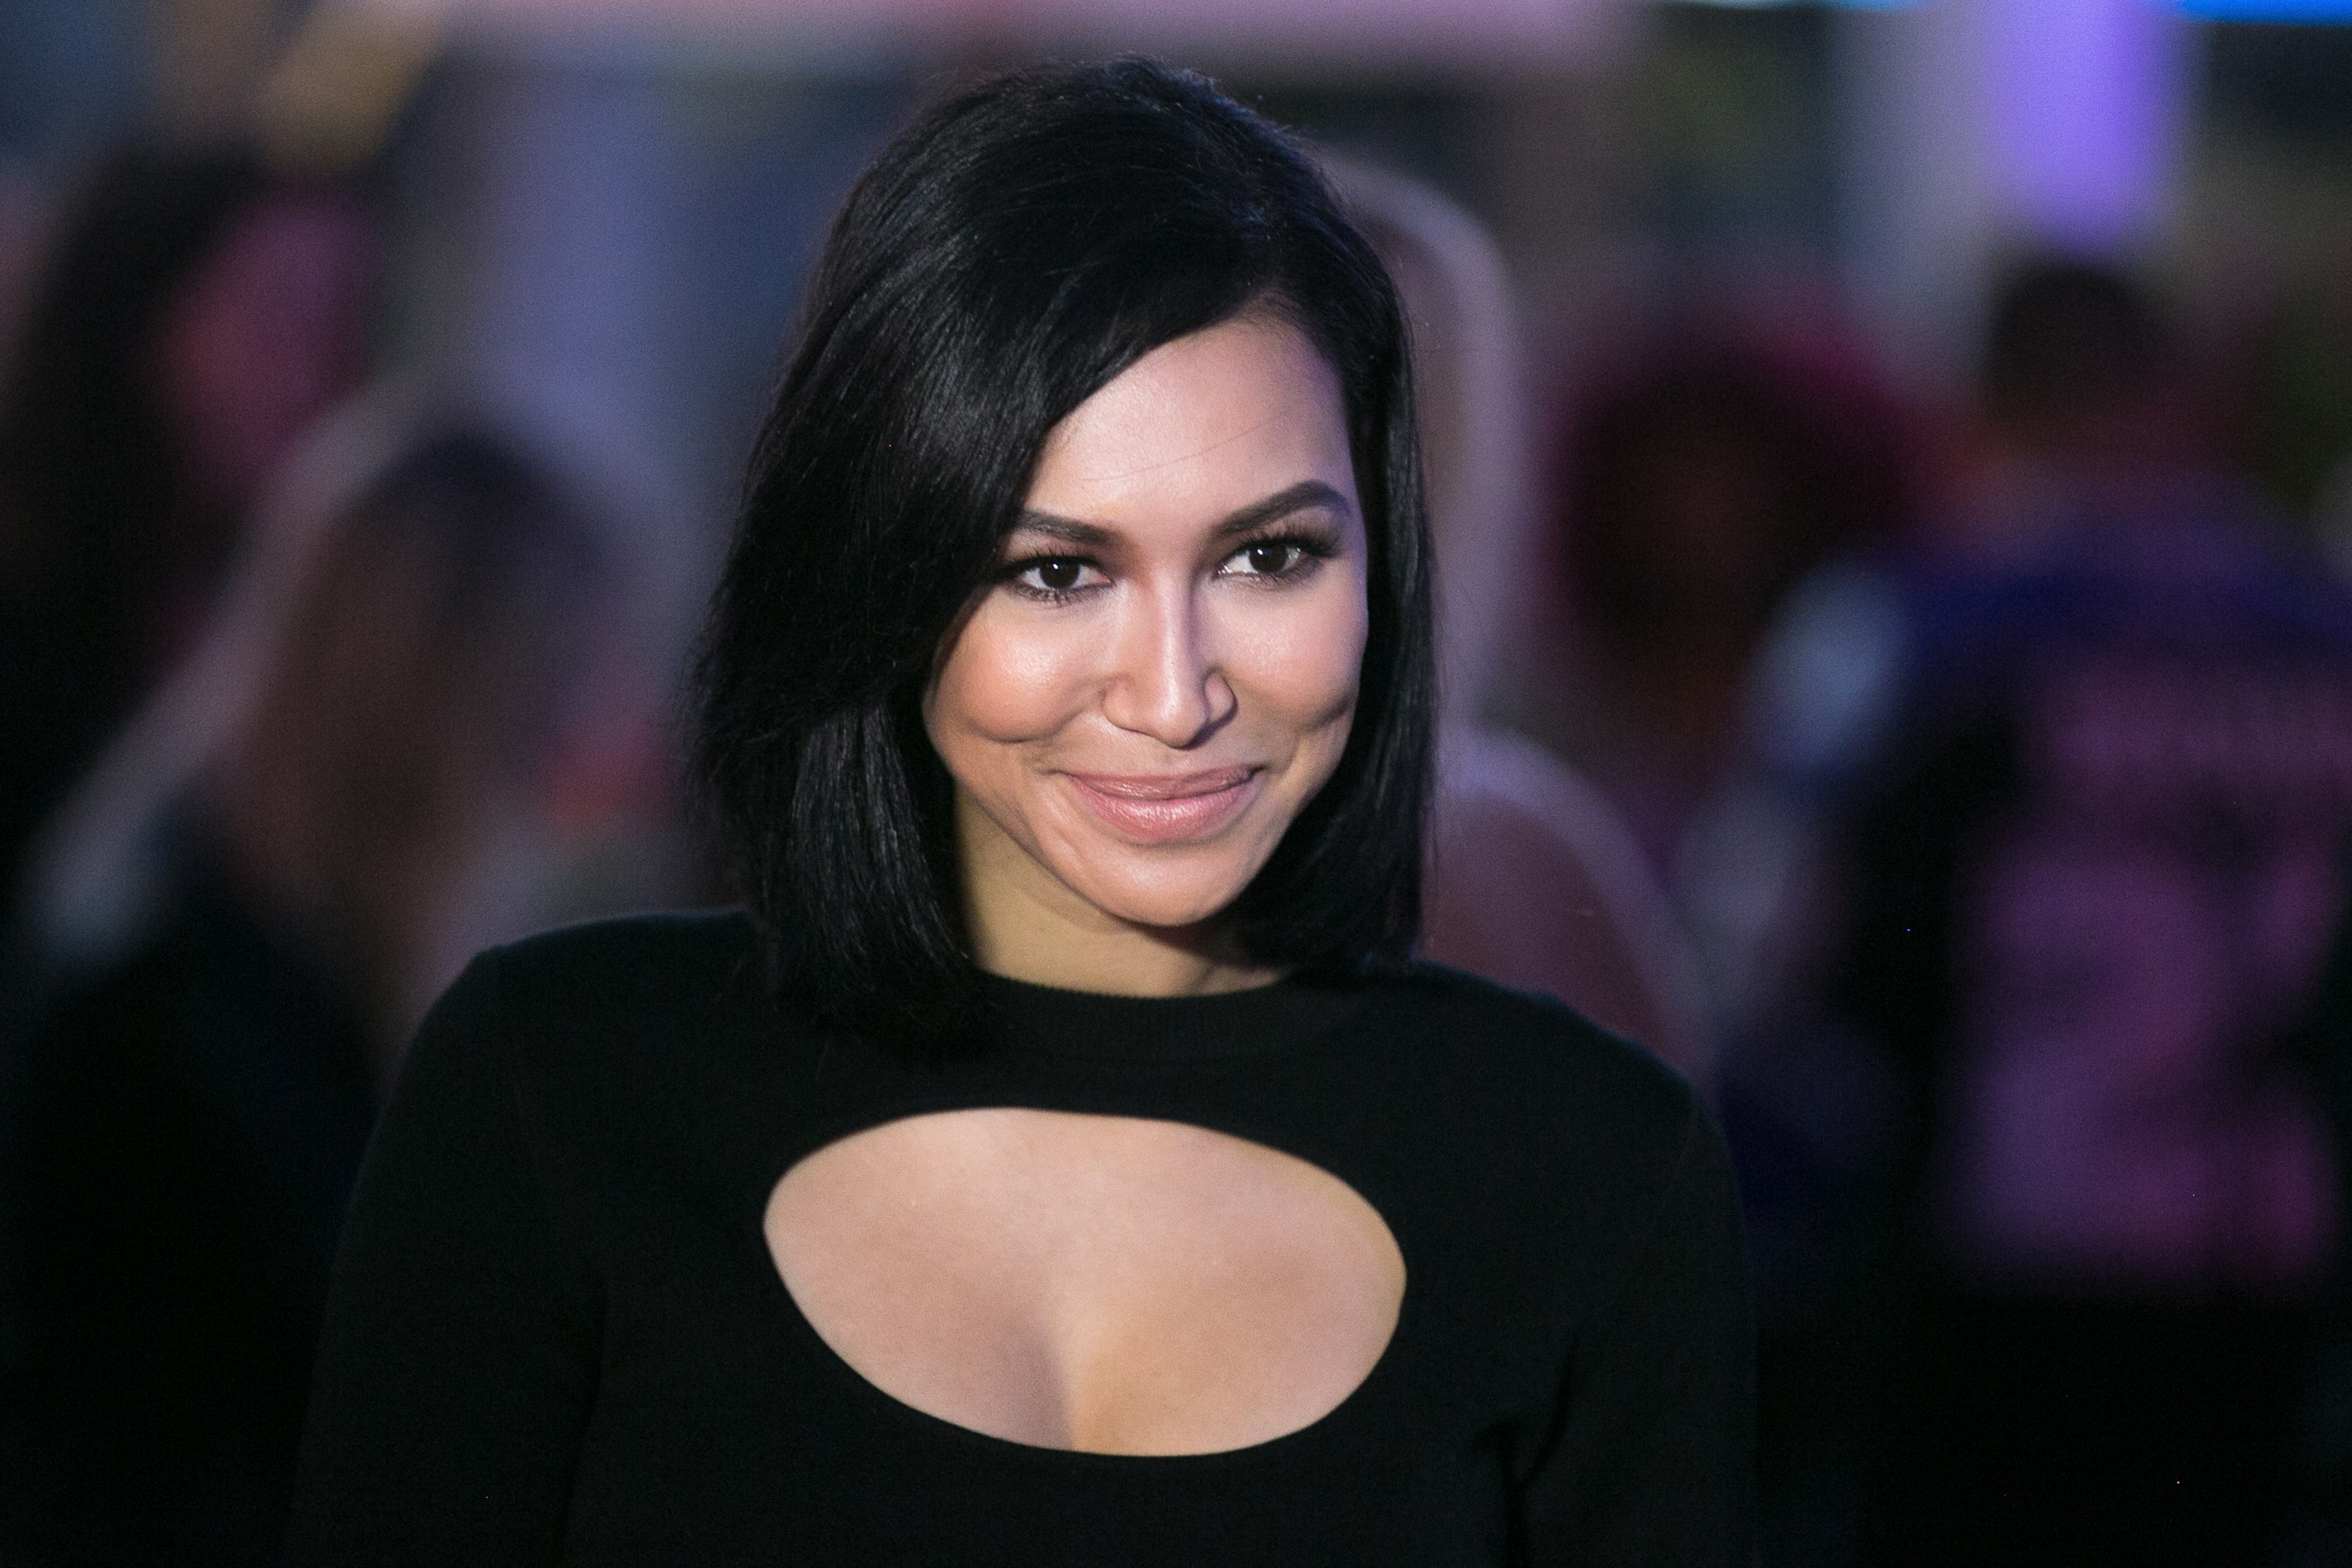 Naya Rivera, star of 'Glee,' dead at 33 after disappearing from boat